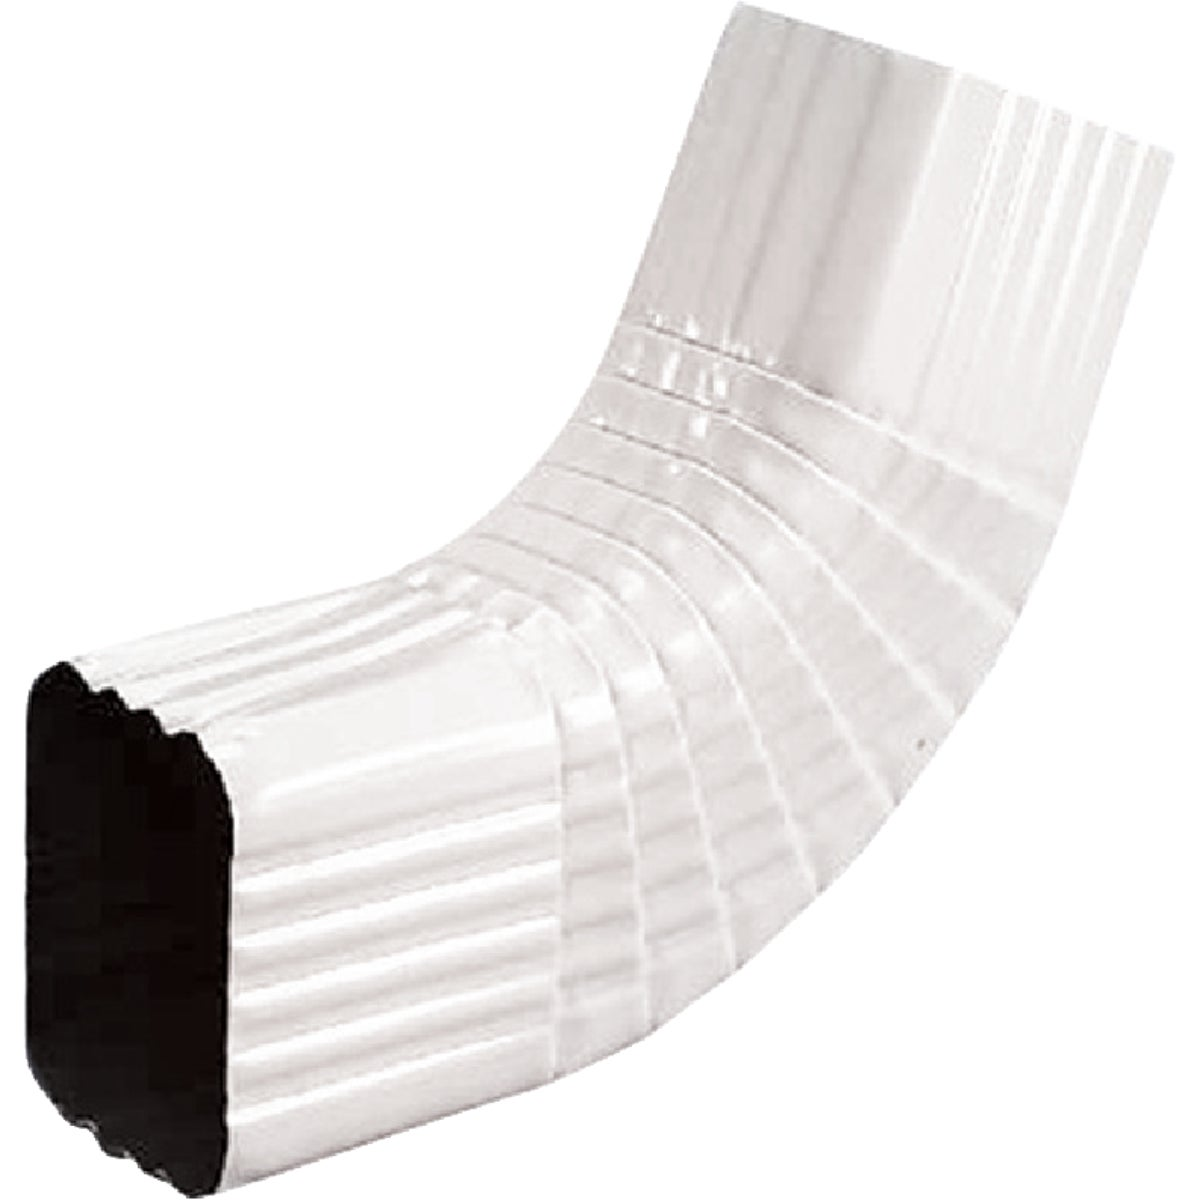 2X3 WHT B-ELBOW - 27065 by Amerimax Home Prod